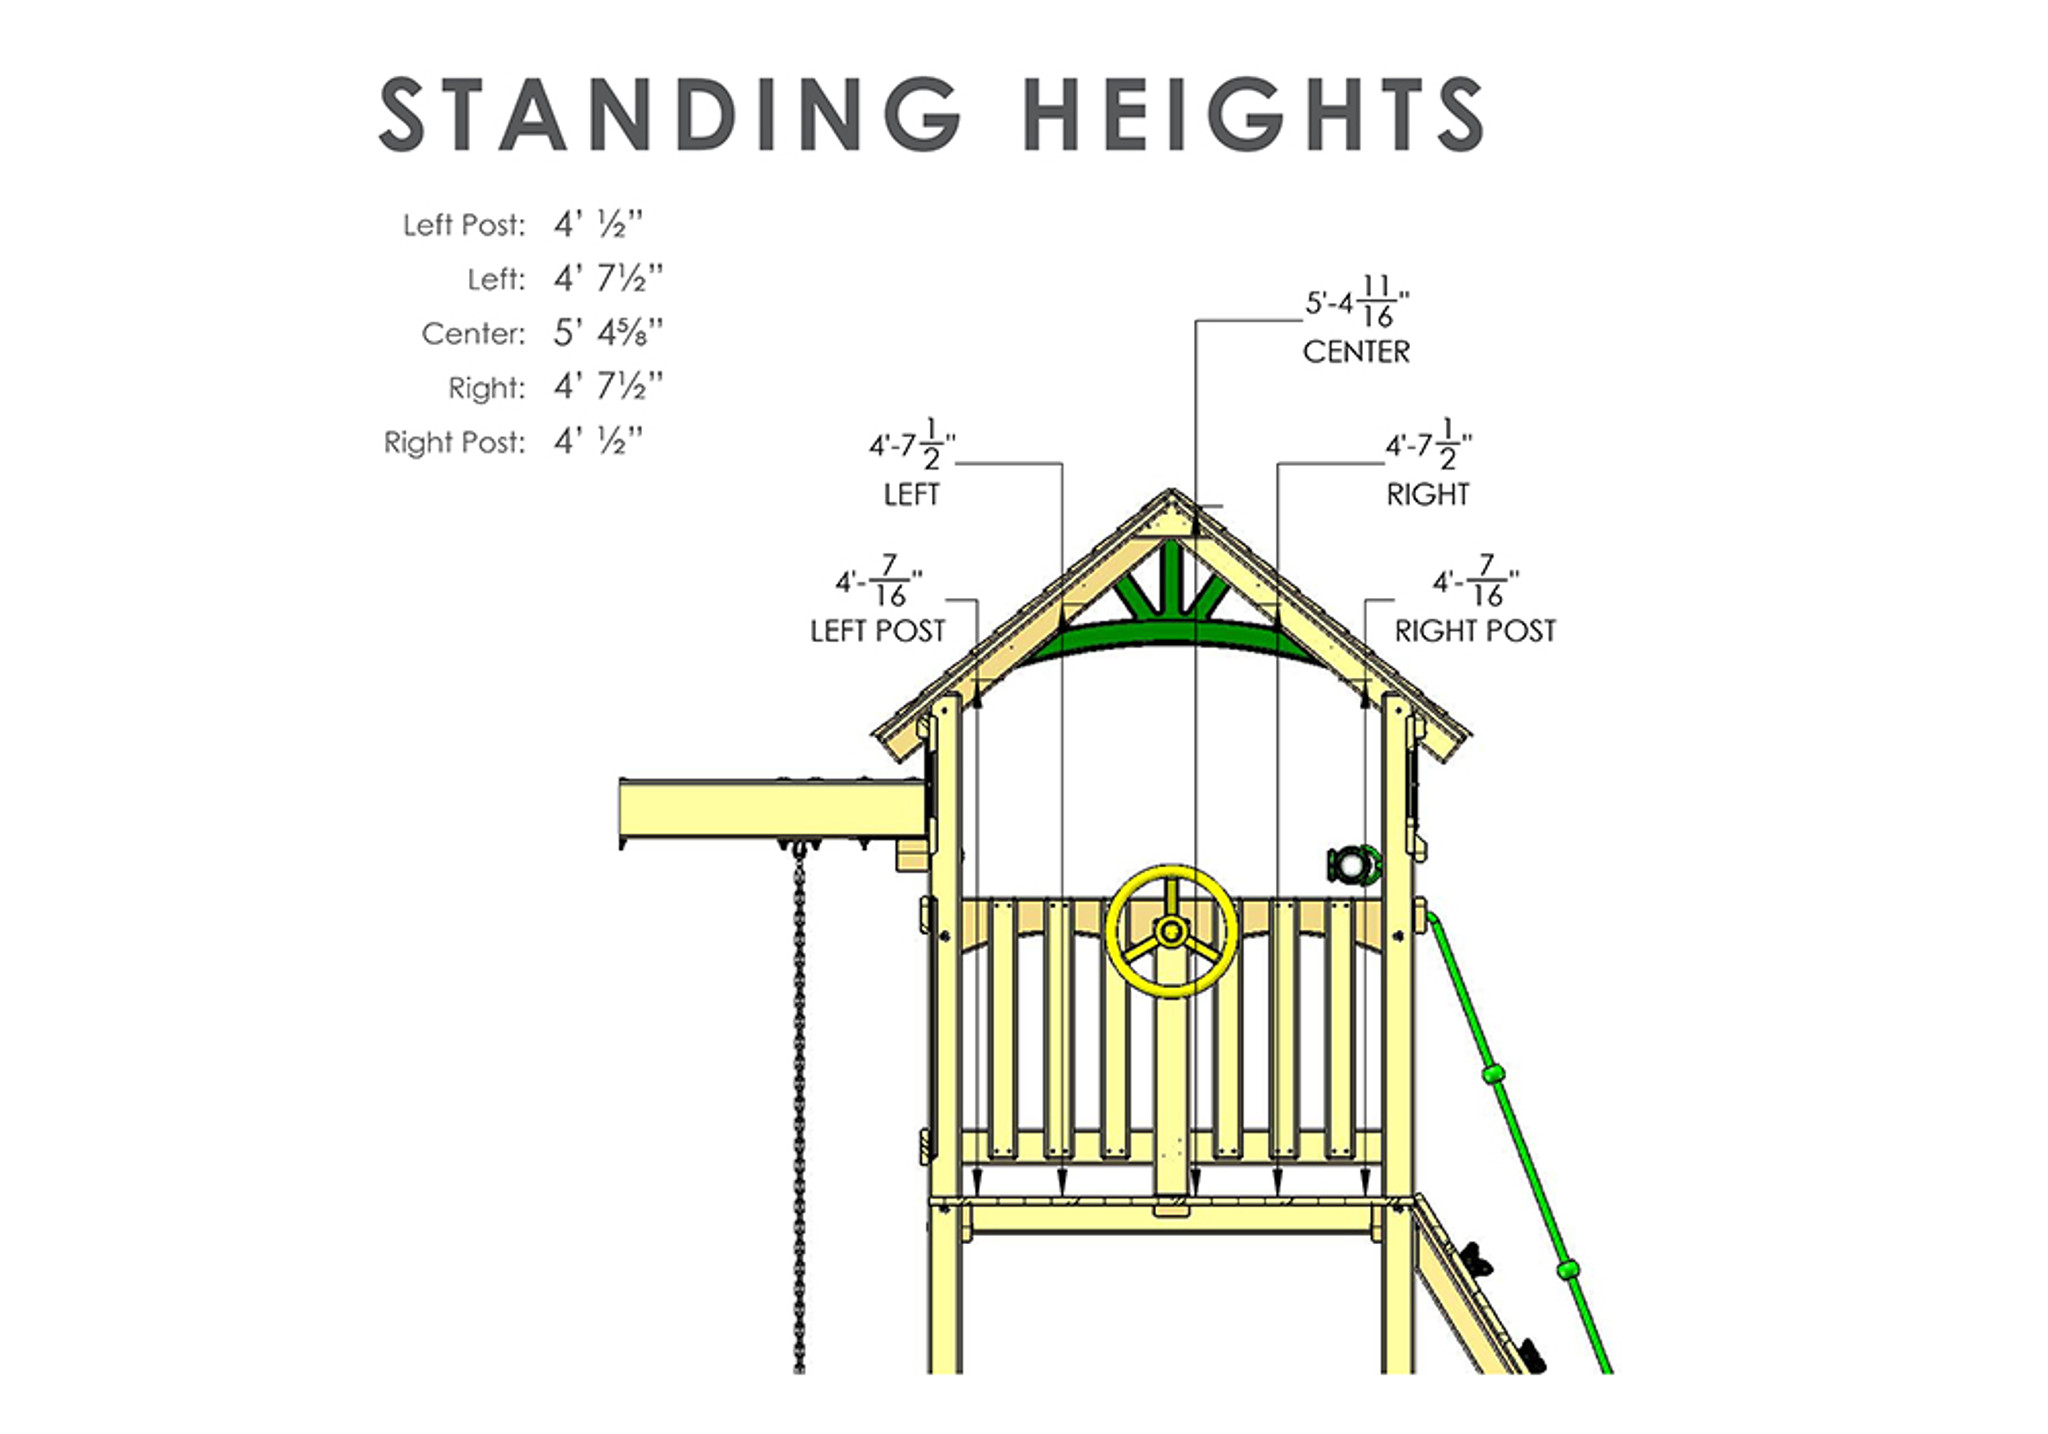 Wood Roof Standing Heights View of Outing w/ Dual Slide Swingset from Playnation